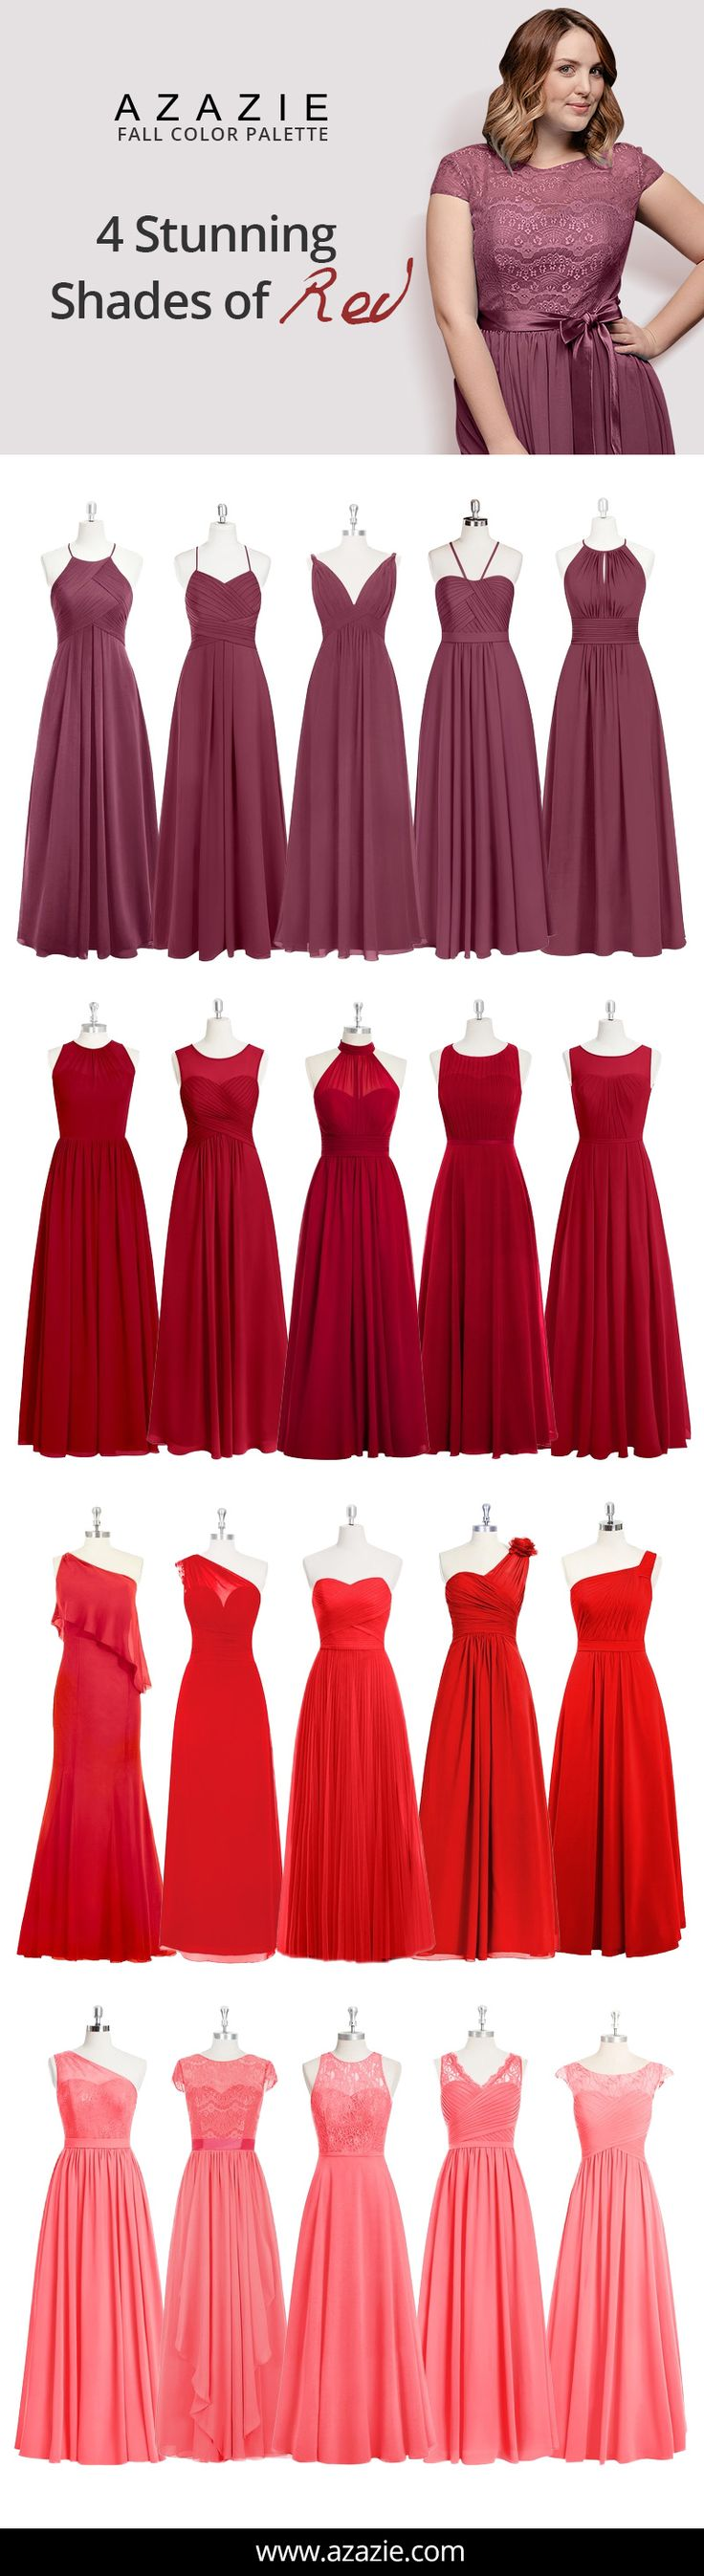 Attention Autumn brides! MULBERRY, BURGUNDY, RED, WATERMELON are quite the popular shades for any Autumn themed wedding. Into the latest trends? Mix-and-match these classy shades of red by having your bridesmaids choose from 150+ of our dresses. Shopping for the perfect bridesmaid dress has never been more affordable either- all dresses are $150 or less! More